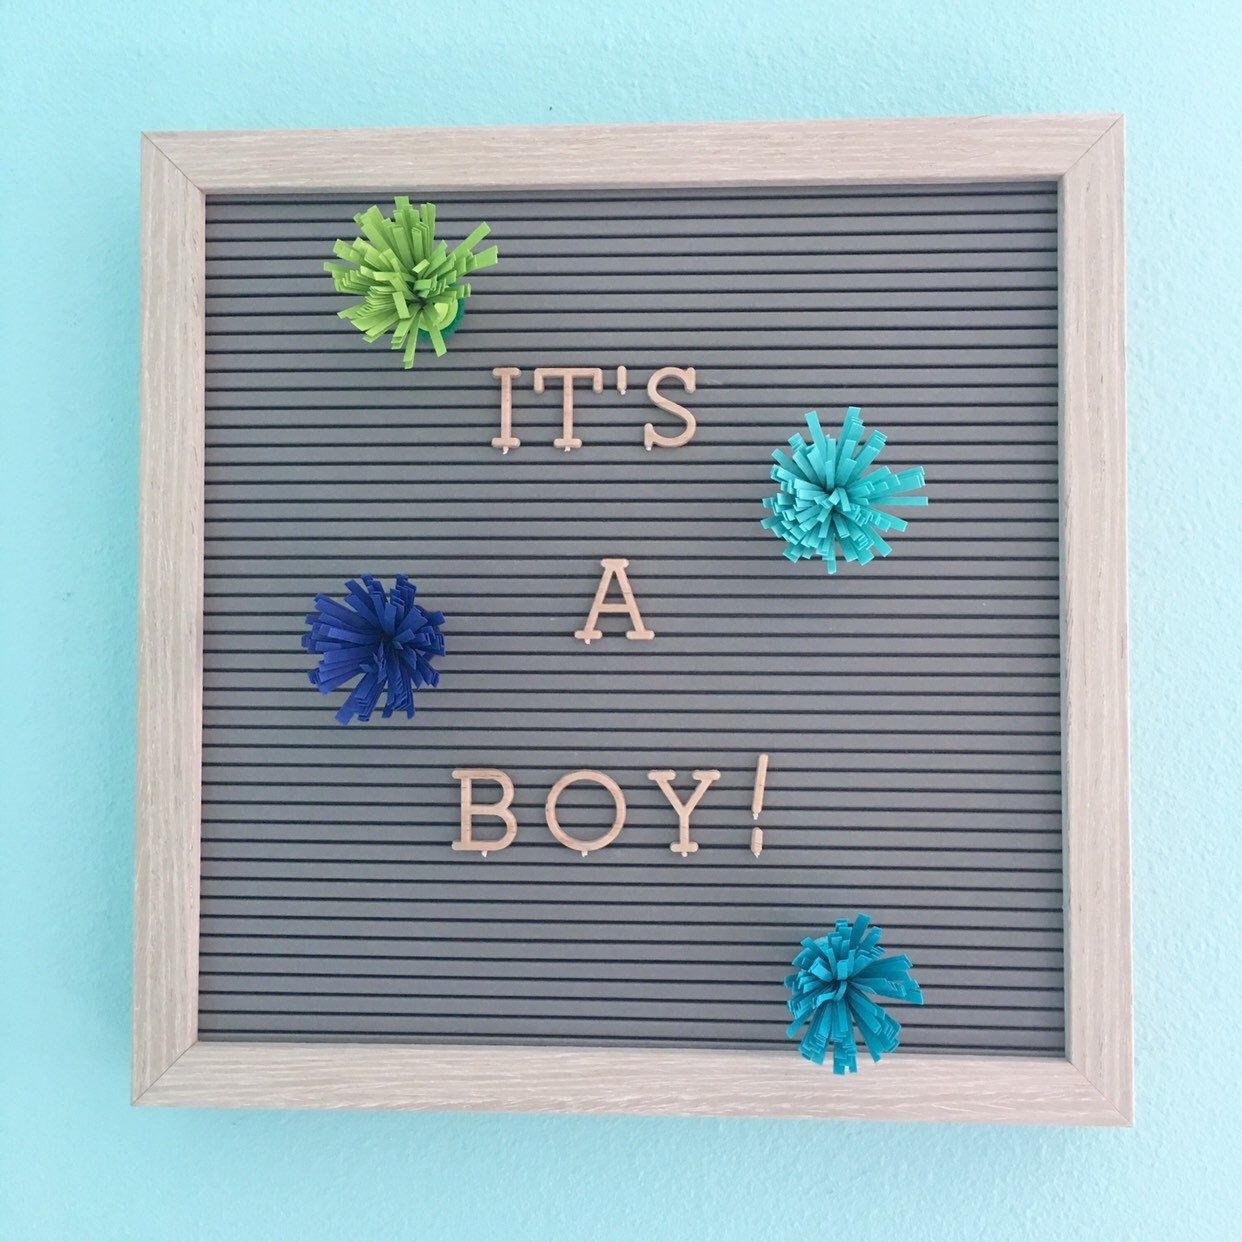 Blue Bursts Letter Board Accessories, Baby Boy Letter